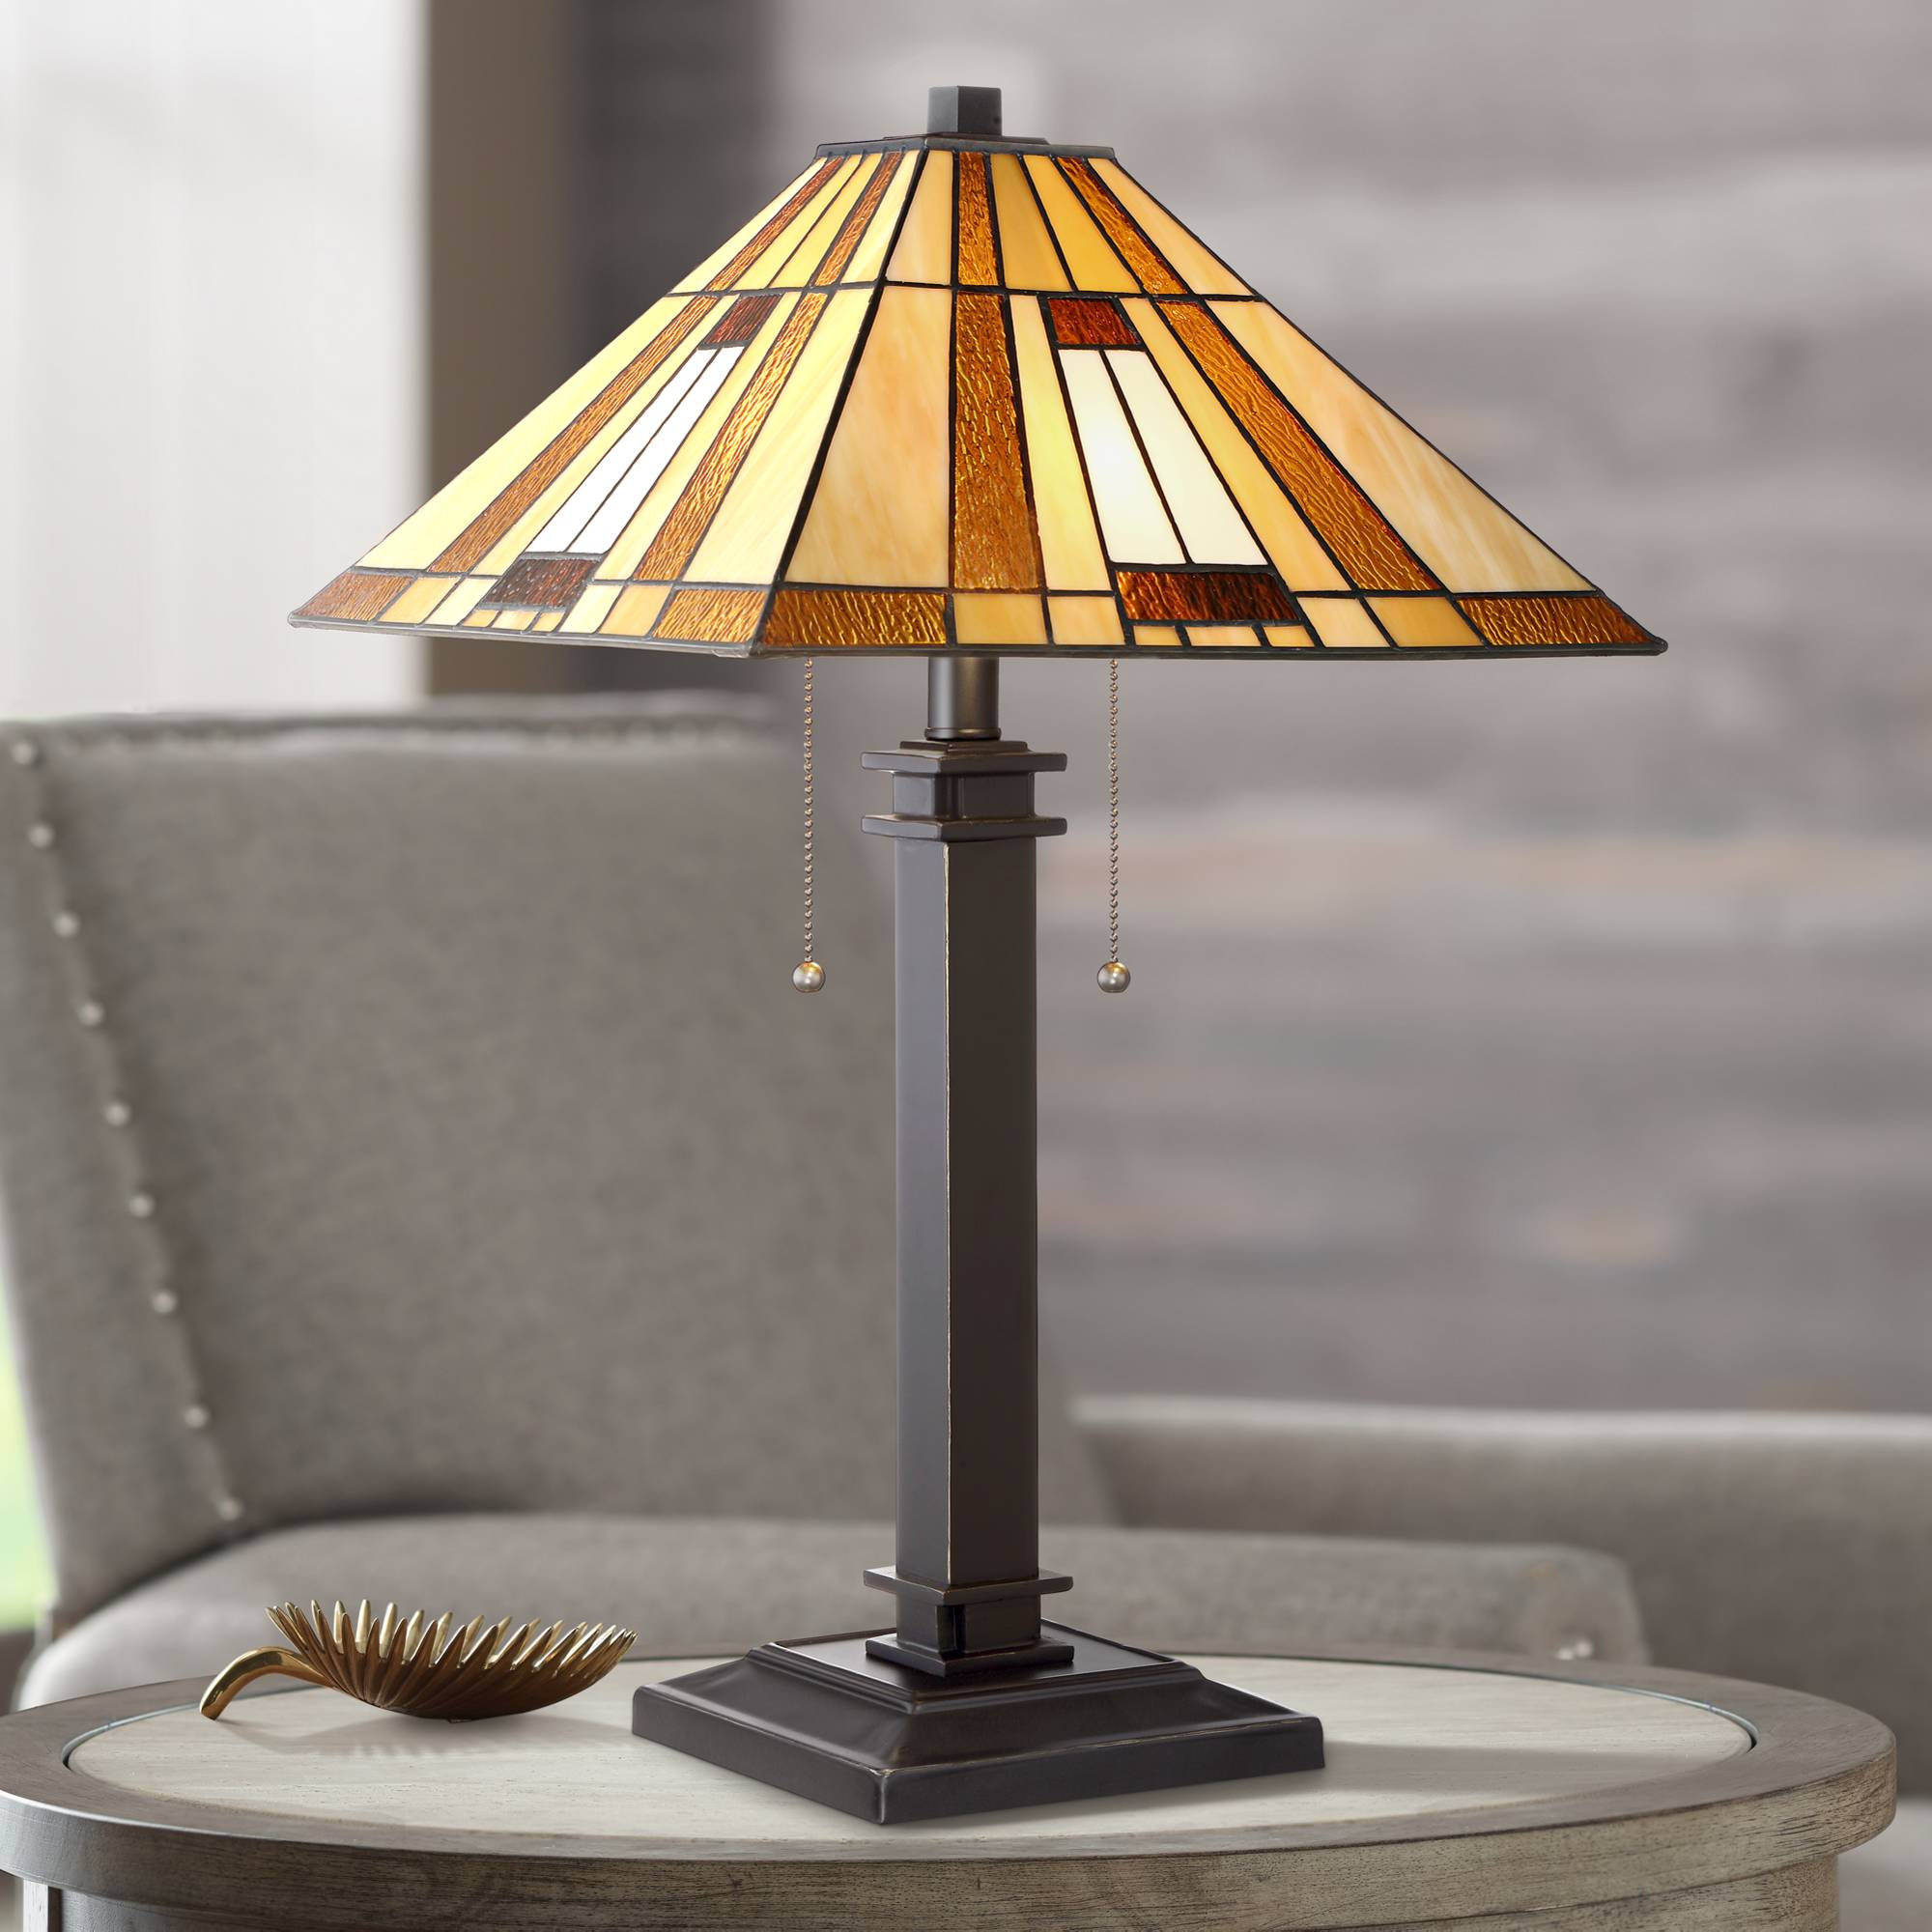 Living Room With Wooden End Table And Tiffany Lamp: Tiffany Style Accent Table Lamp Mission Bronze Amber Art